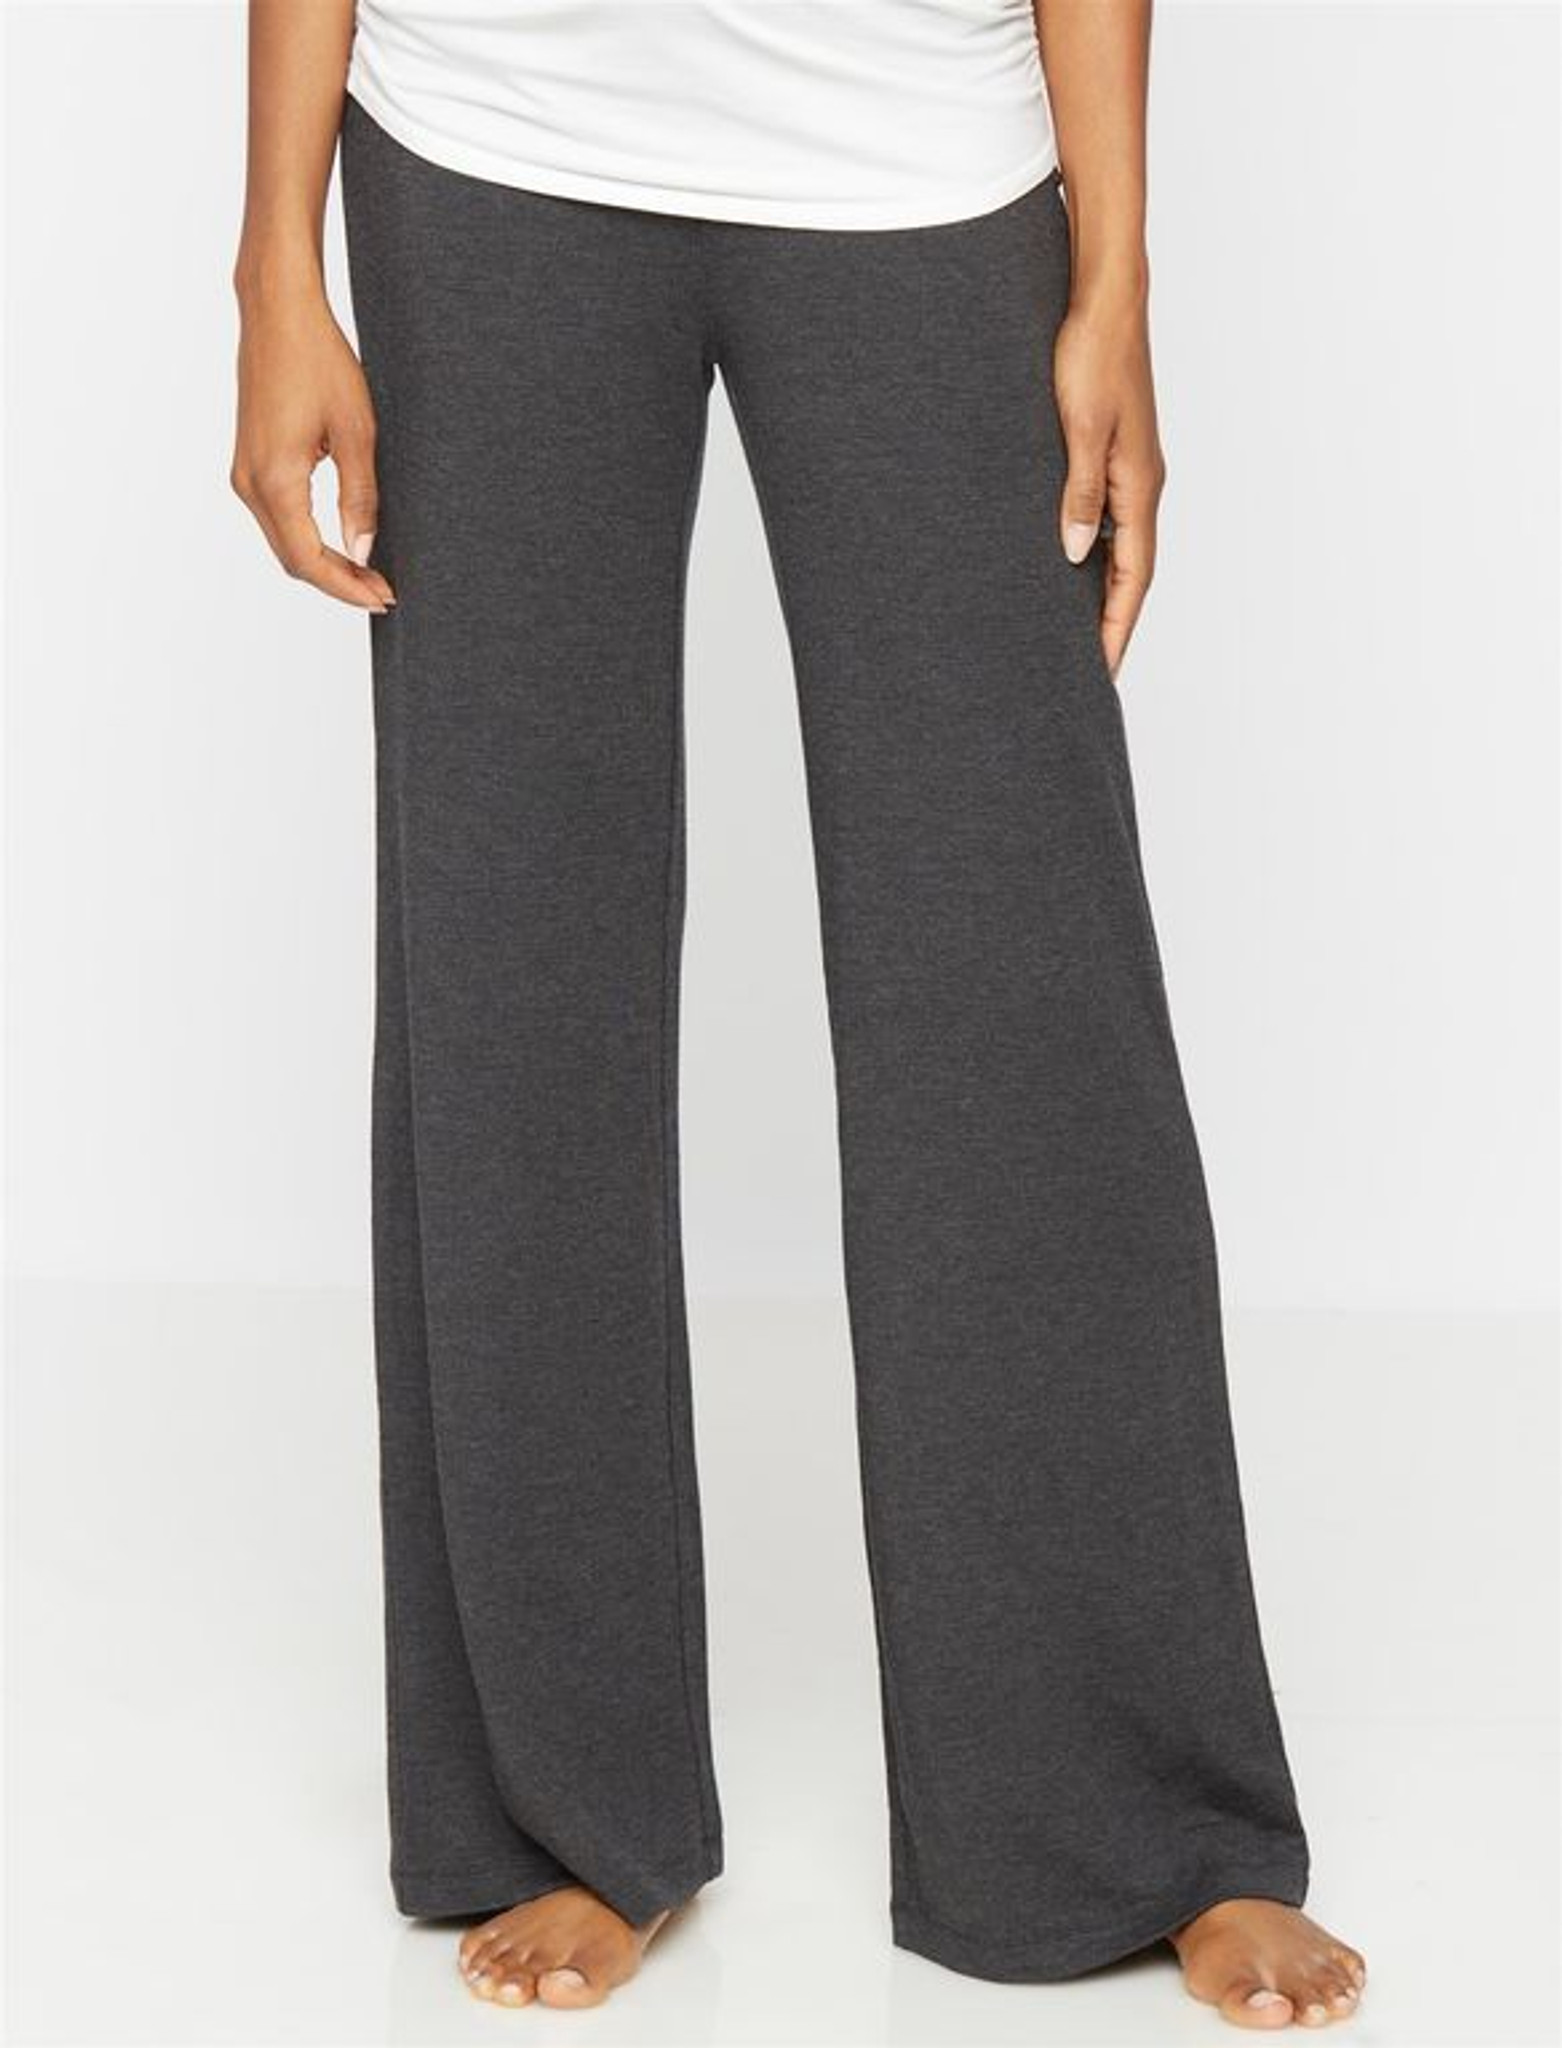 Fifth Avenue ZEFIR Wide Leg Relaxing French Terry Pants - Charcoal